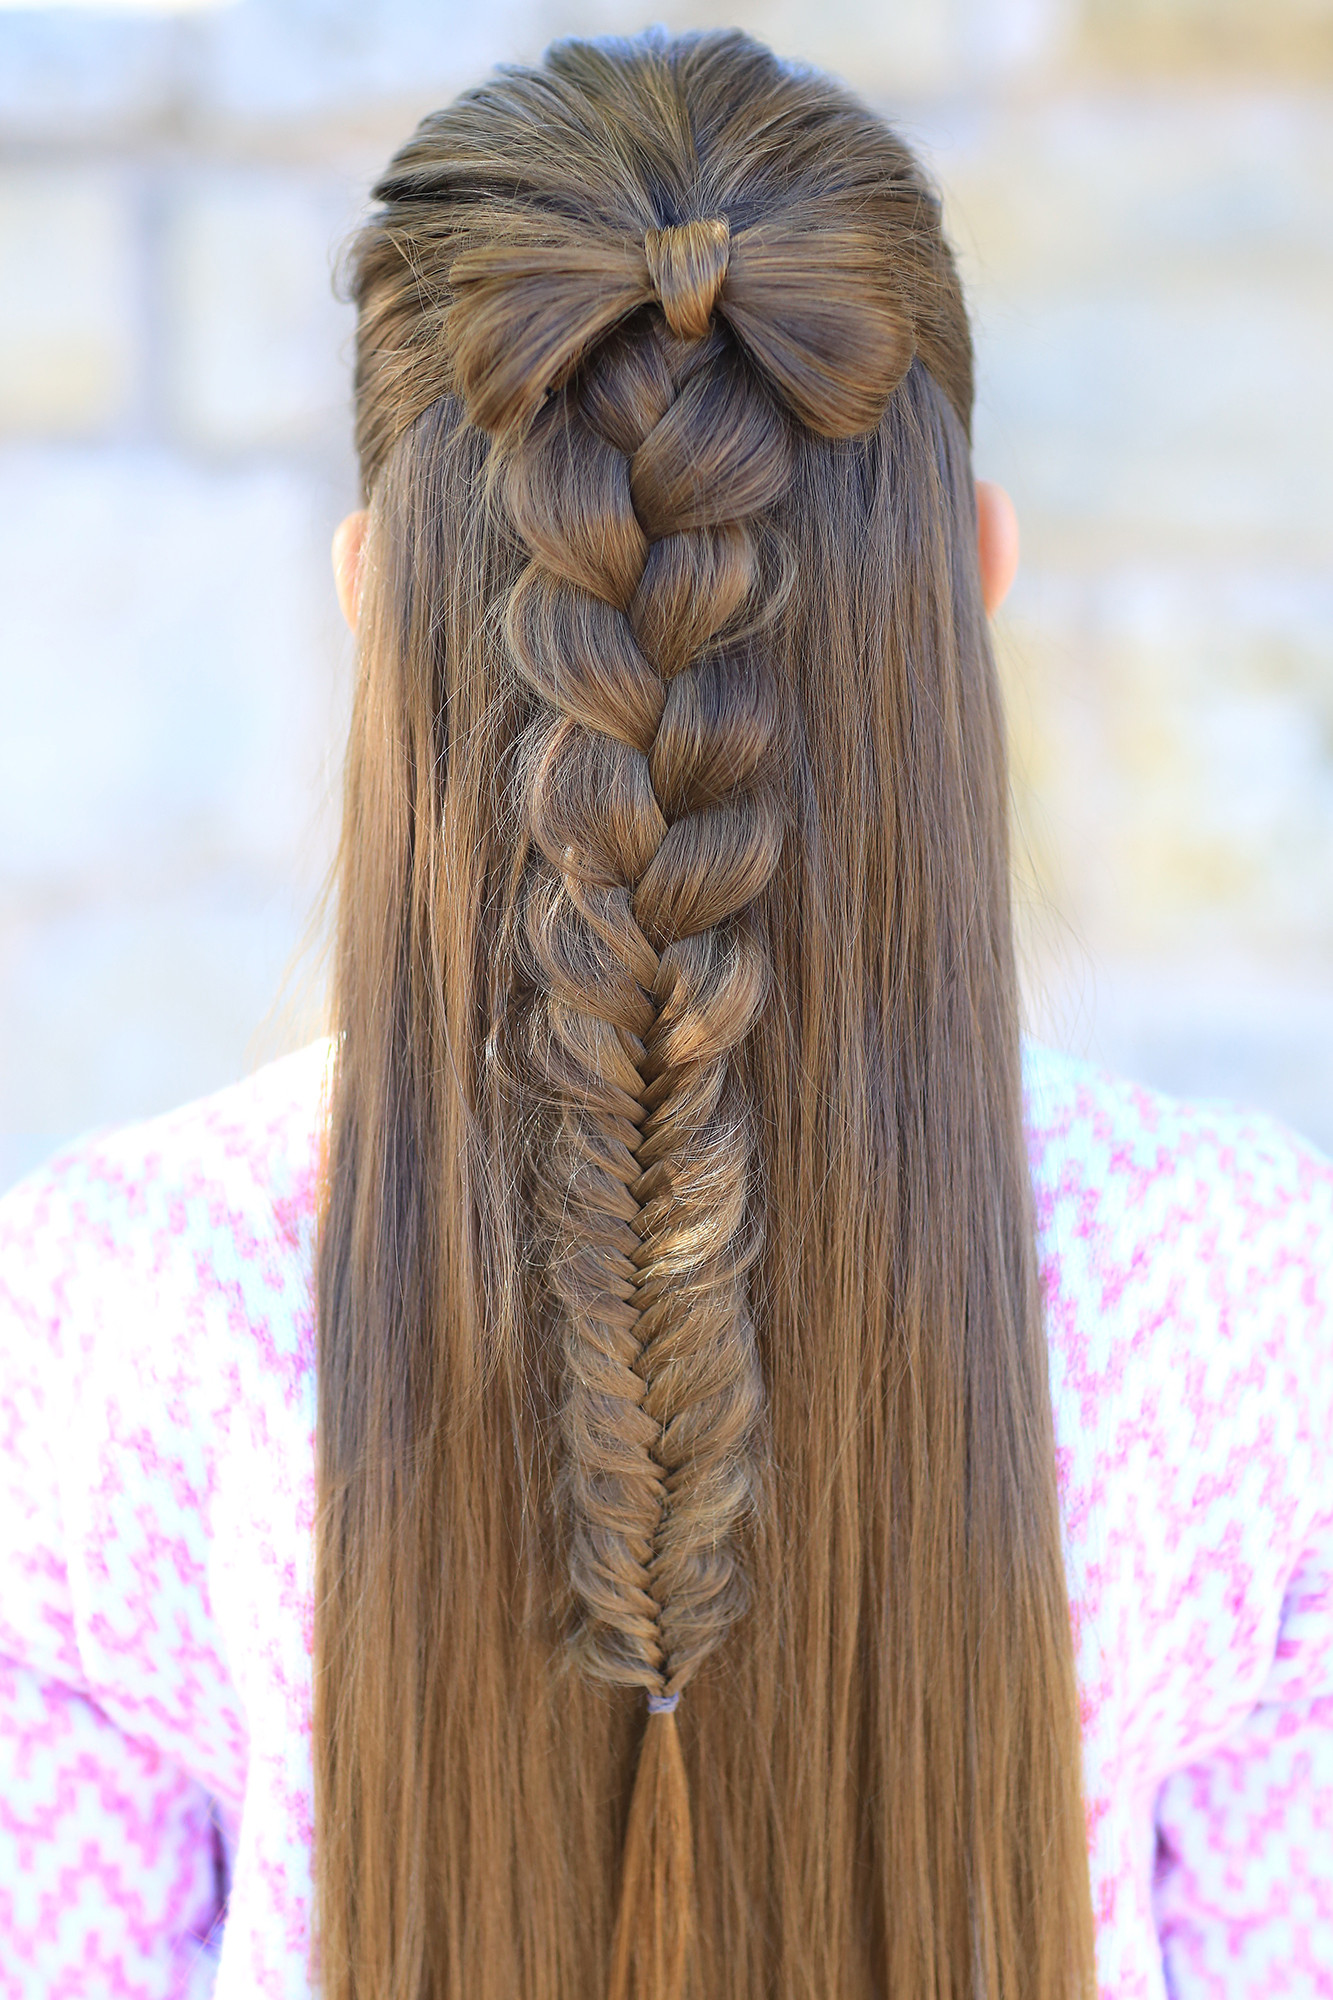 Best ideas about Cute Hairstyles For Women . Save or Pin Half up Bow bo Now.